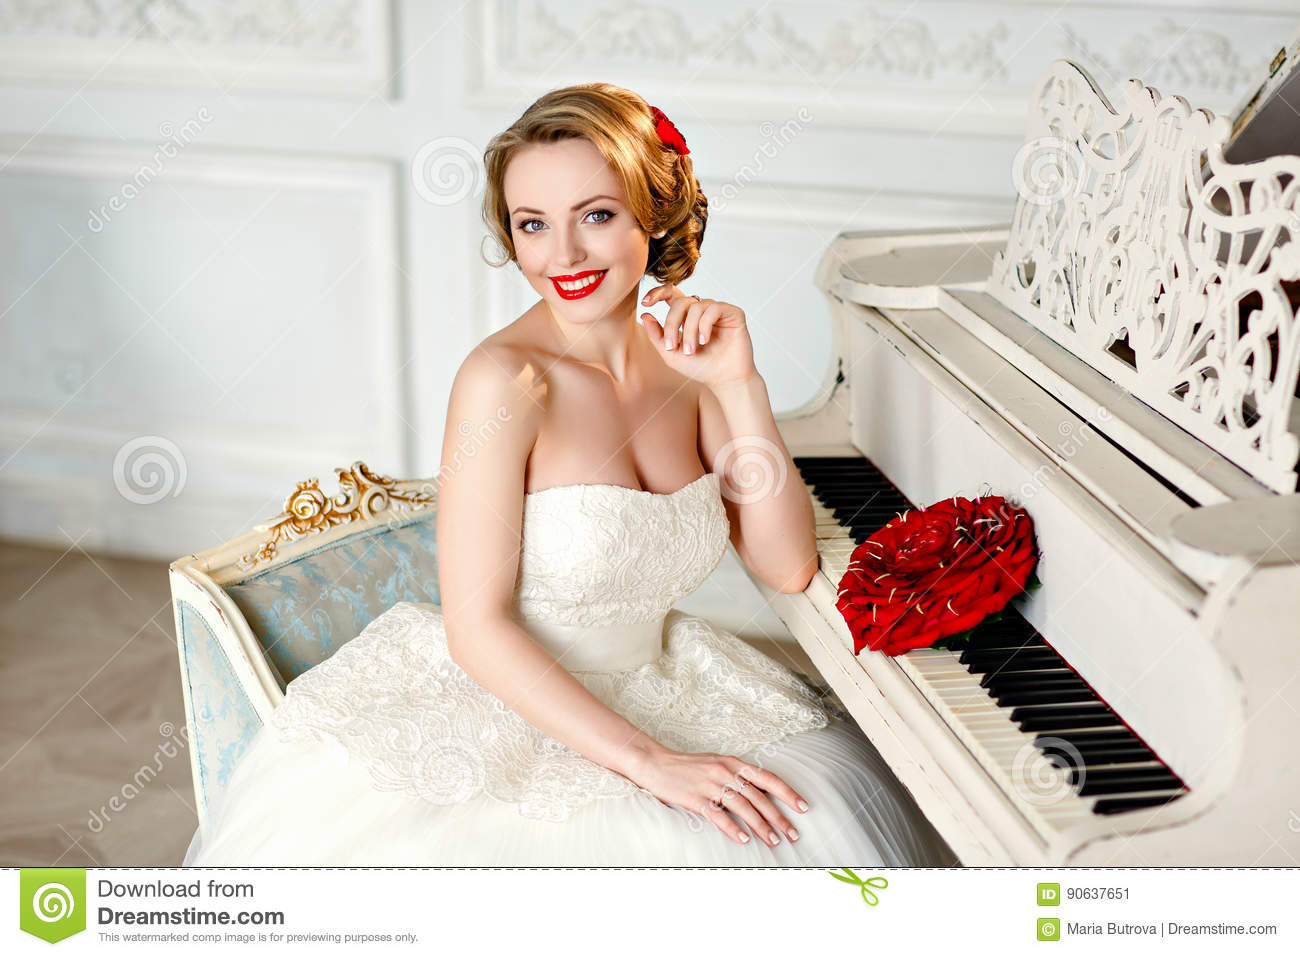 70759c469b5 Charming blonde girl with beautiful smile in a white lace dress and a  bouquet of red roses sits in an old chair next to the piano on the  background of the ...